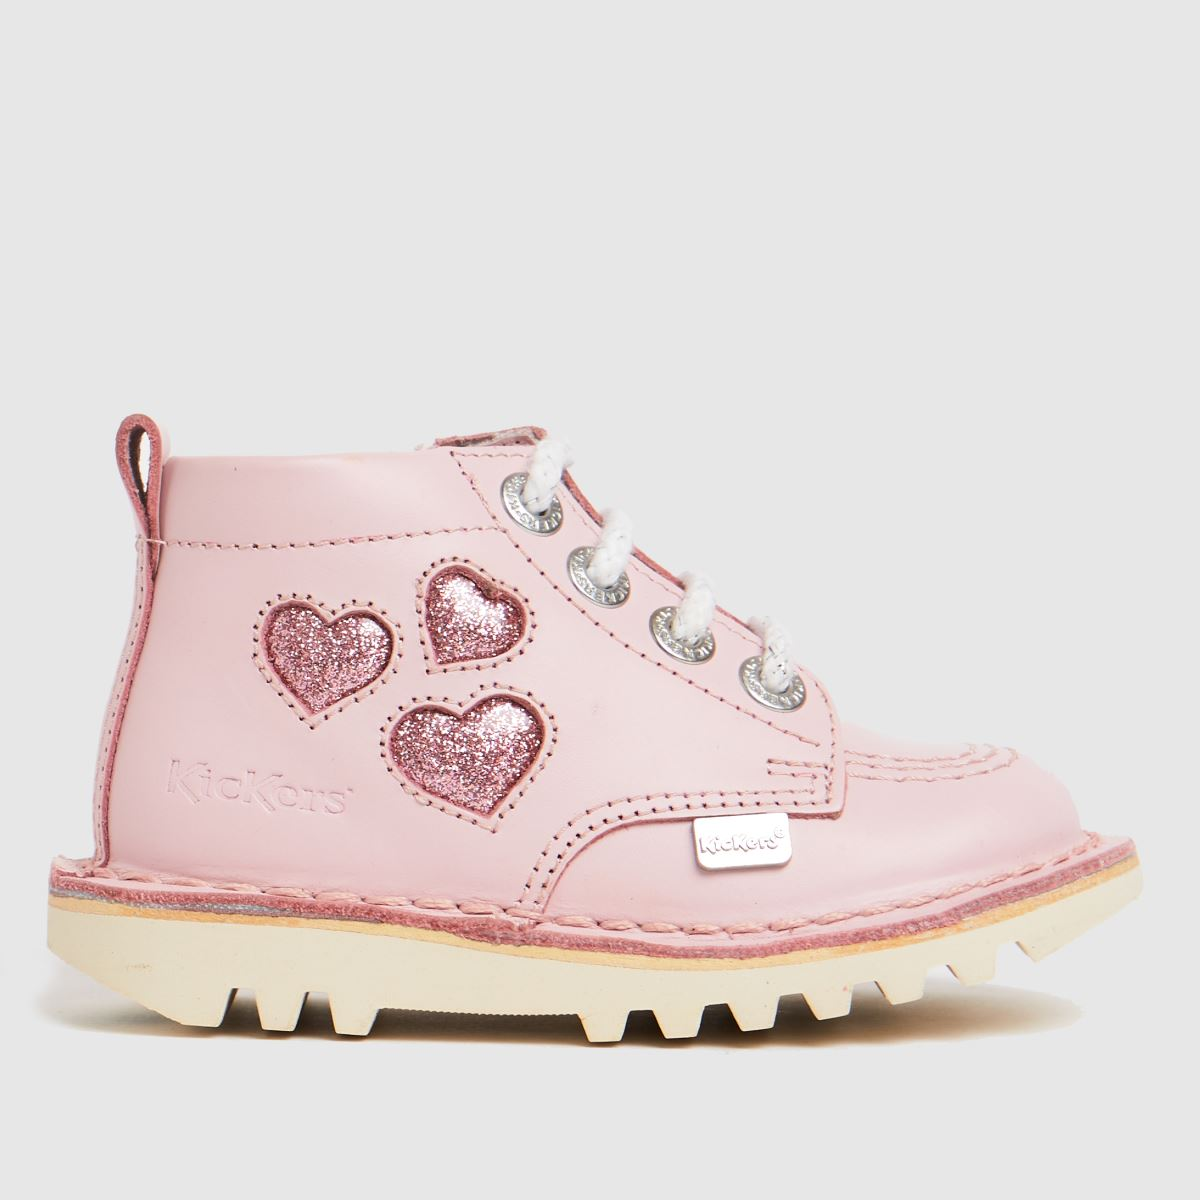 Kickers Pale Pink Hi Heart Boots Toddler